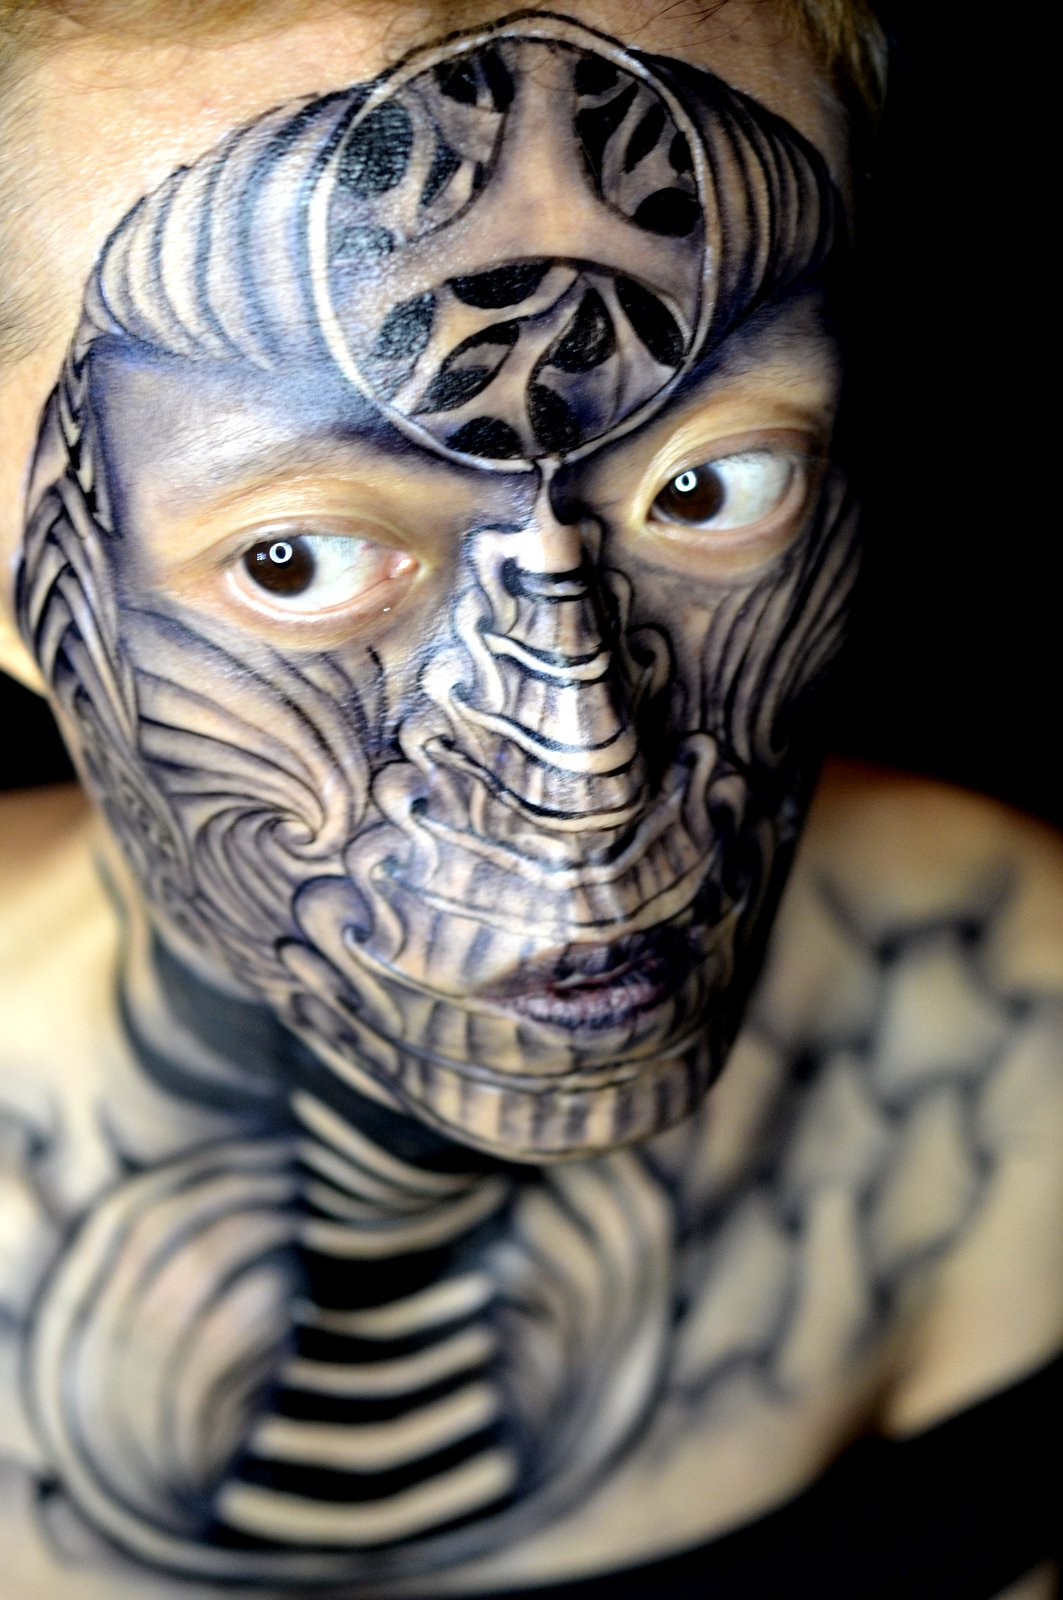 hong kong face body art